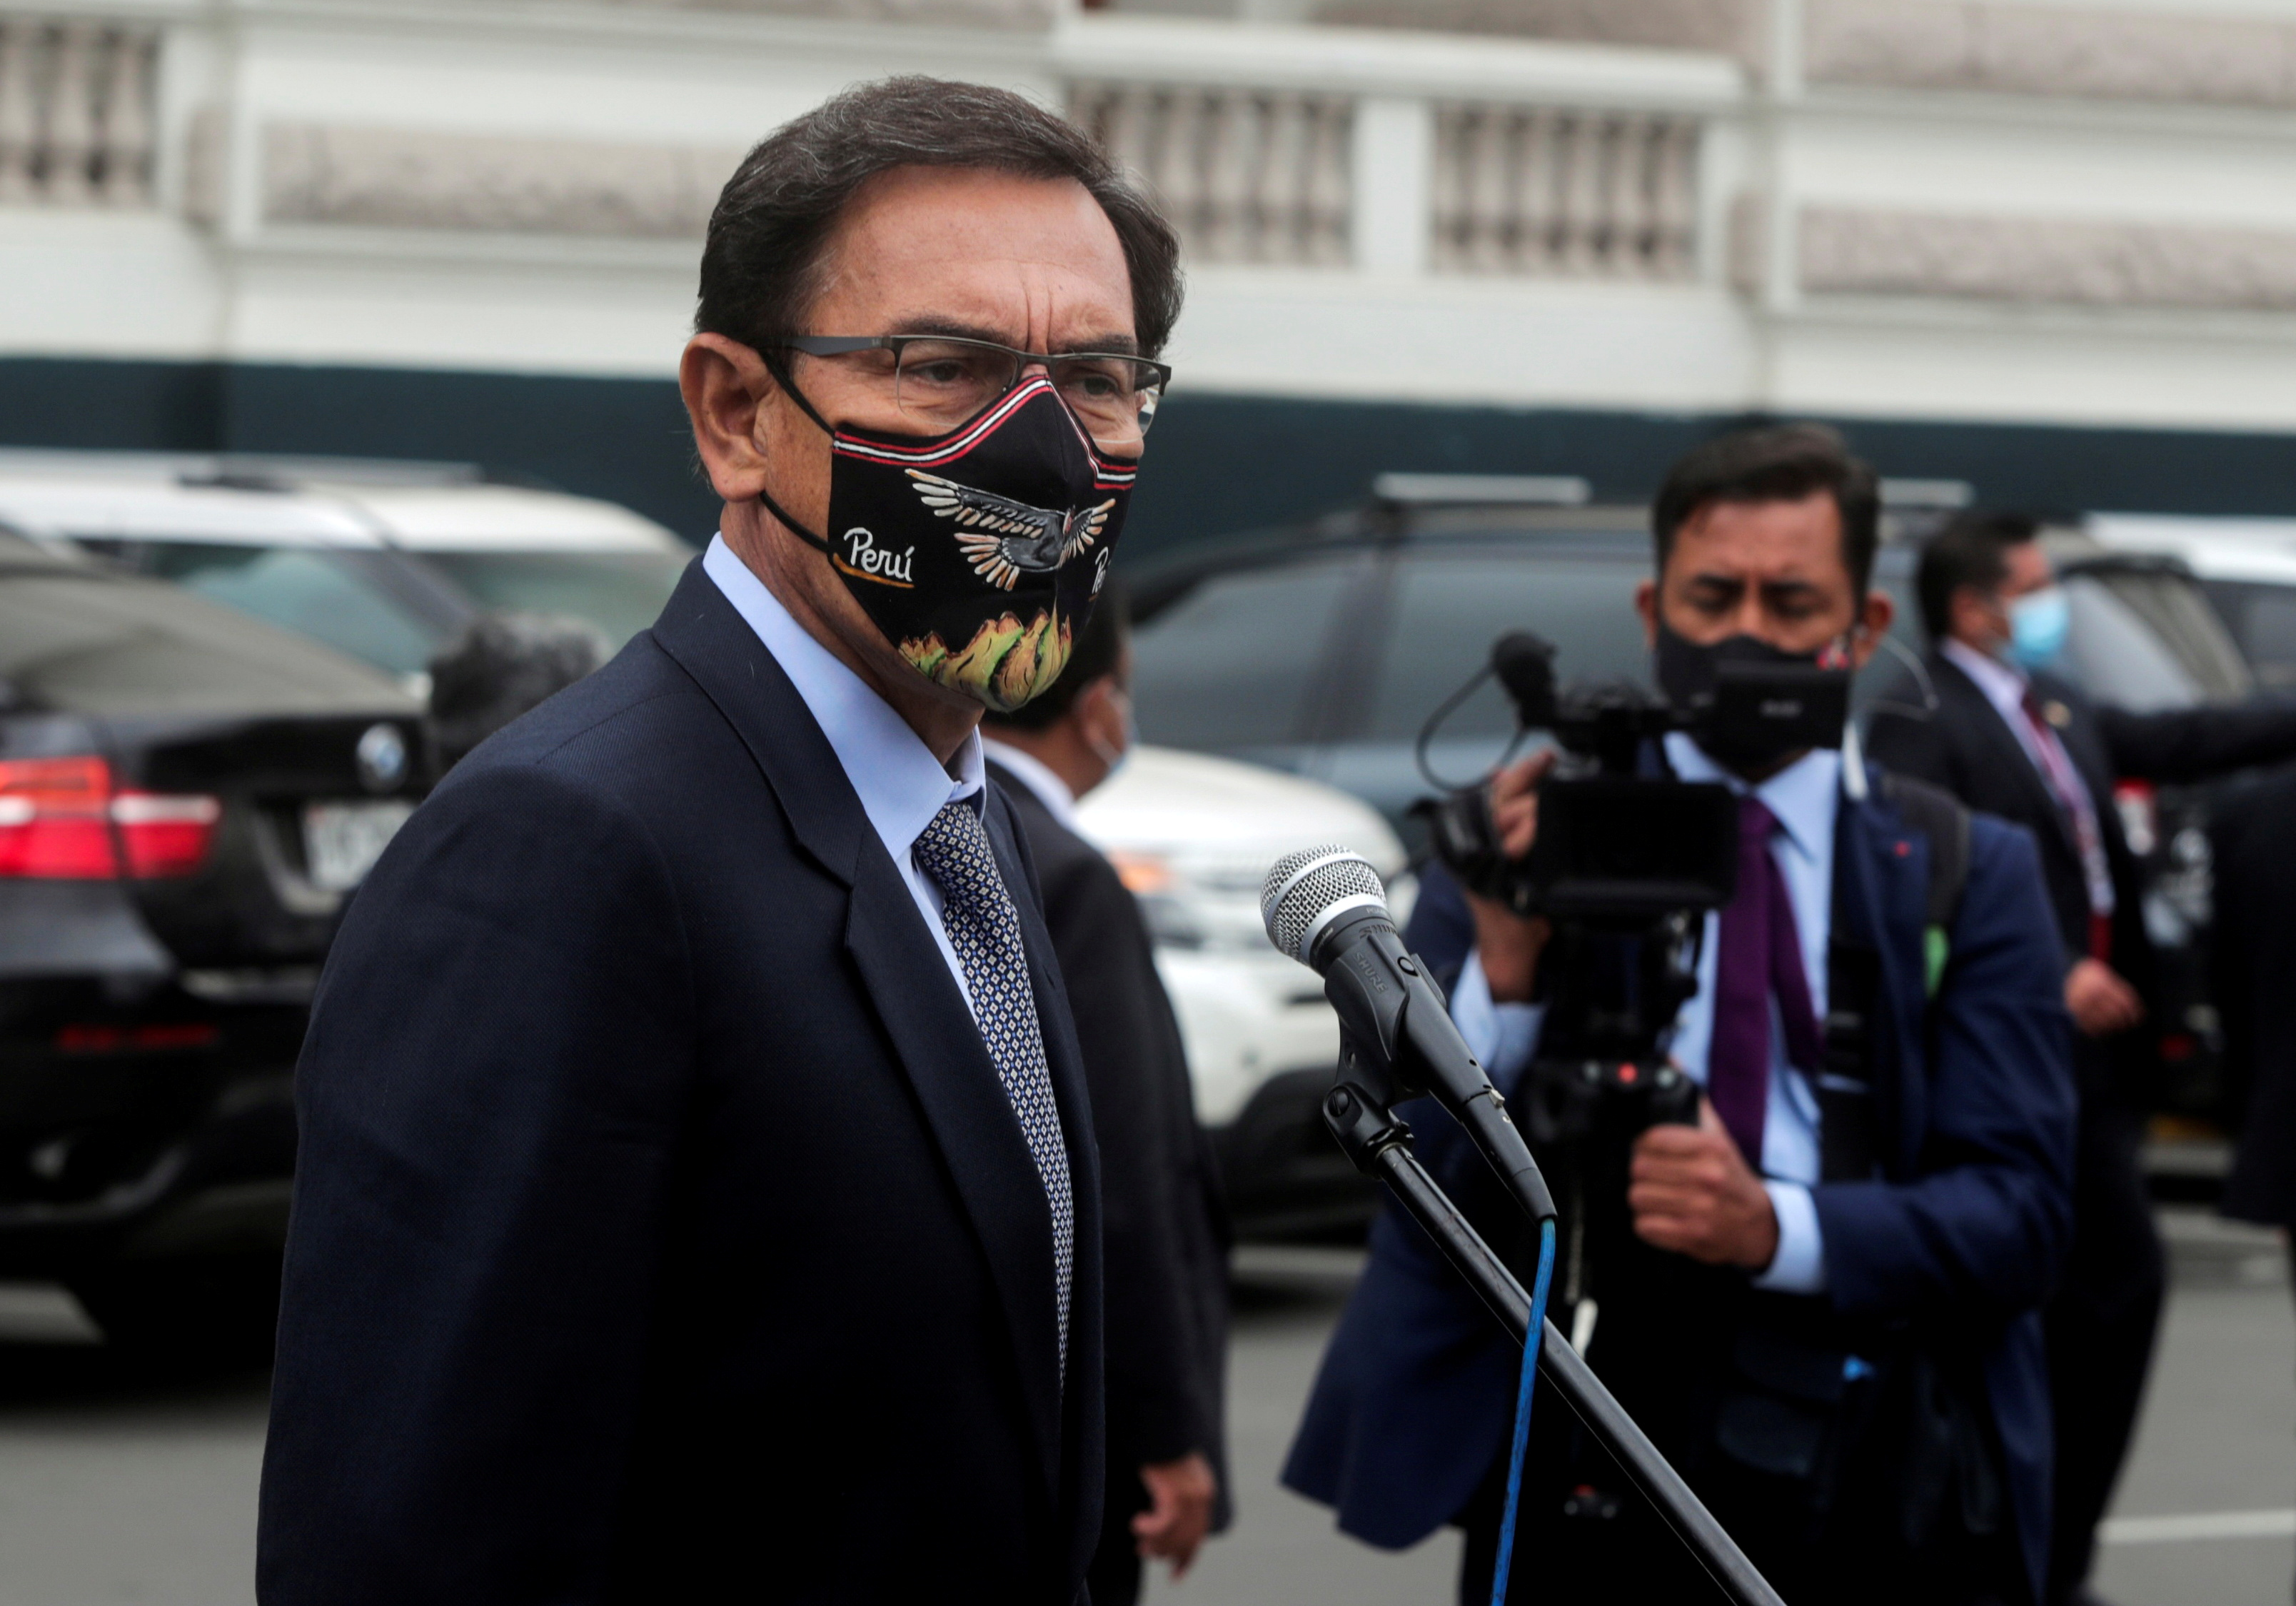 Peruvian ex-president Vizcarra banned from public office over vaccines  scandal | Reuters